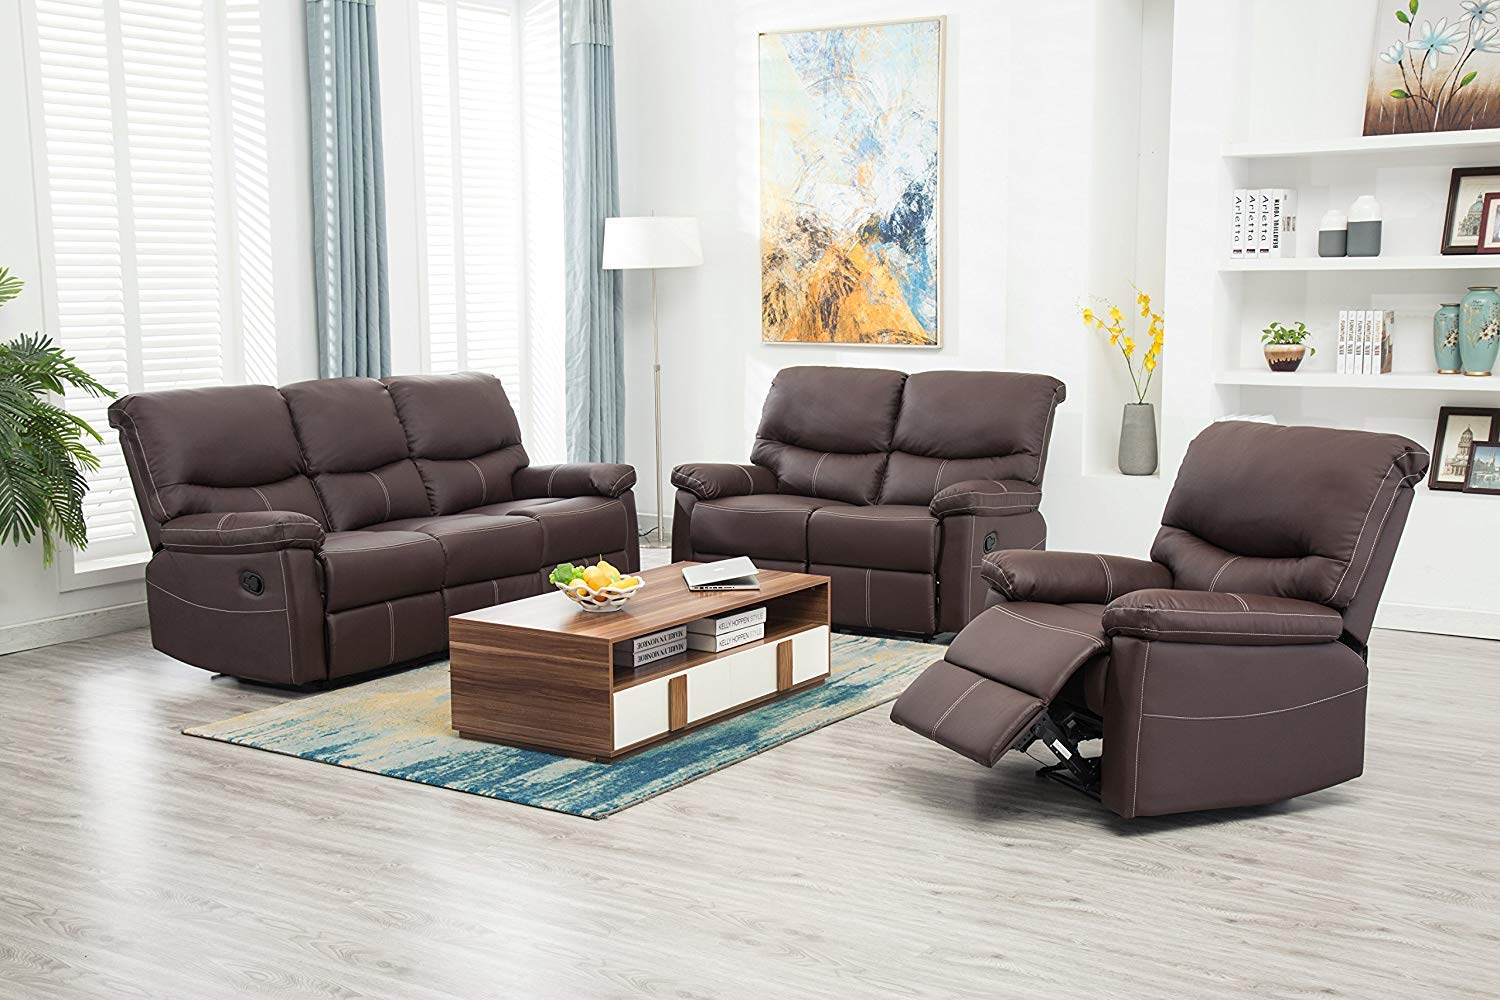 Recliner Sofa Sectional Reclining Chair Three seat Modern Furniture Set for  Living Room Classic and Traditional — Catalog Furniture